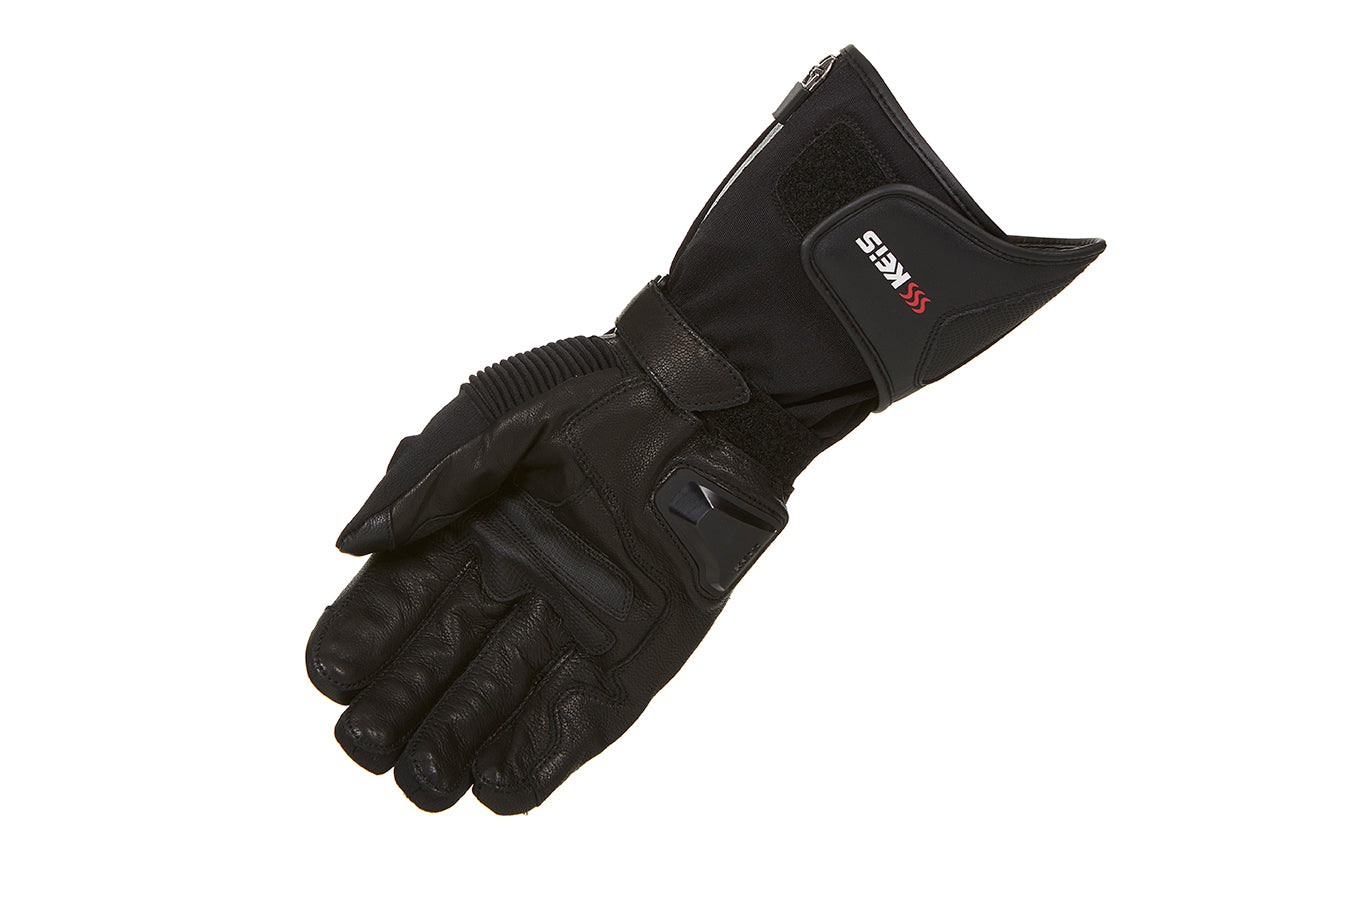 Quality material used for the Keis Heated Gloves G601